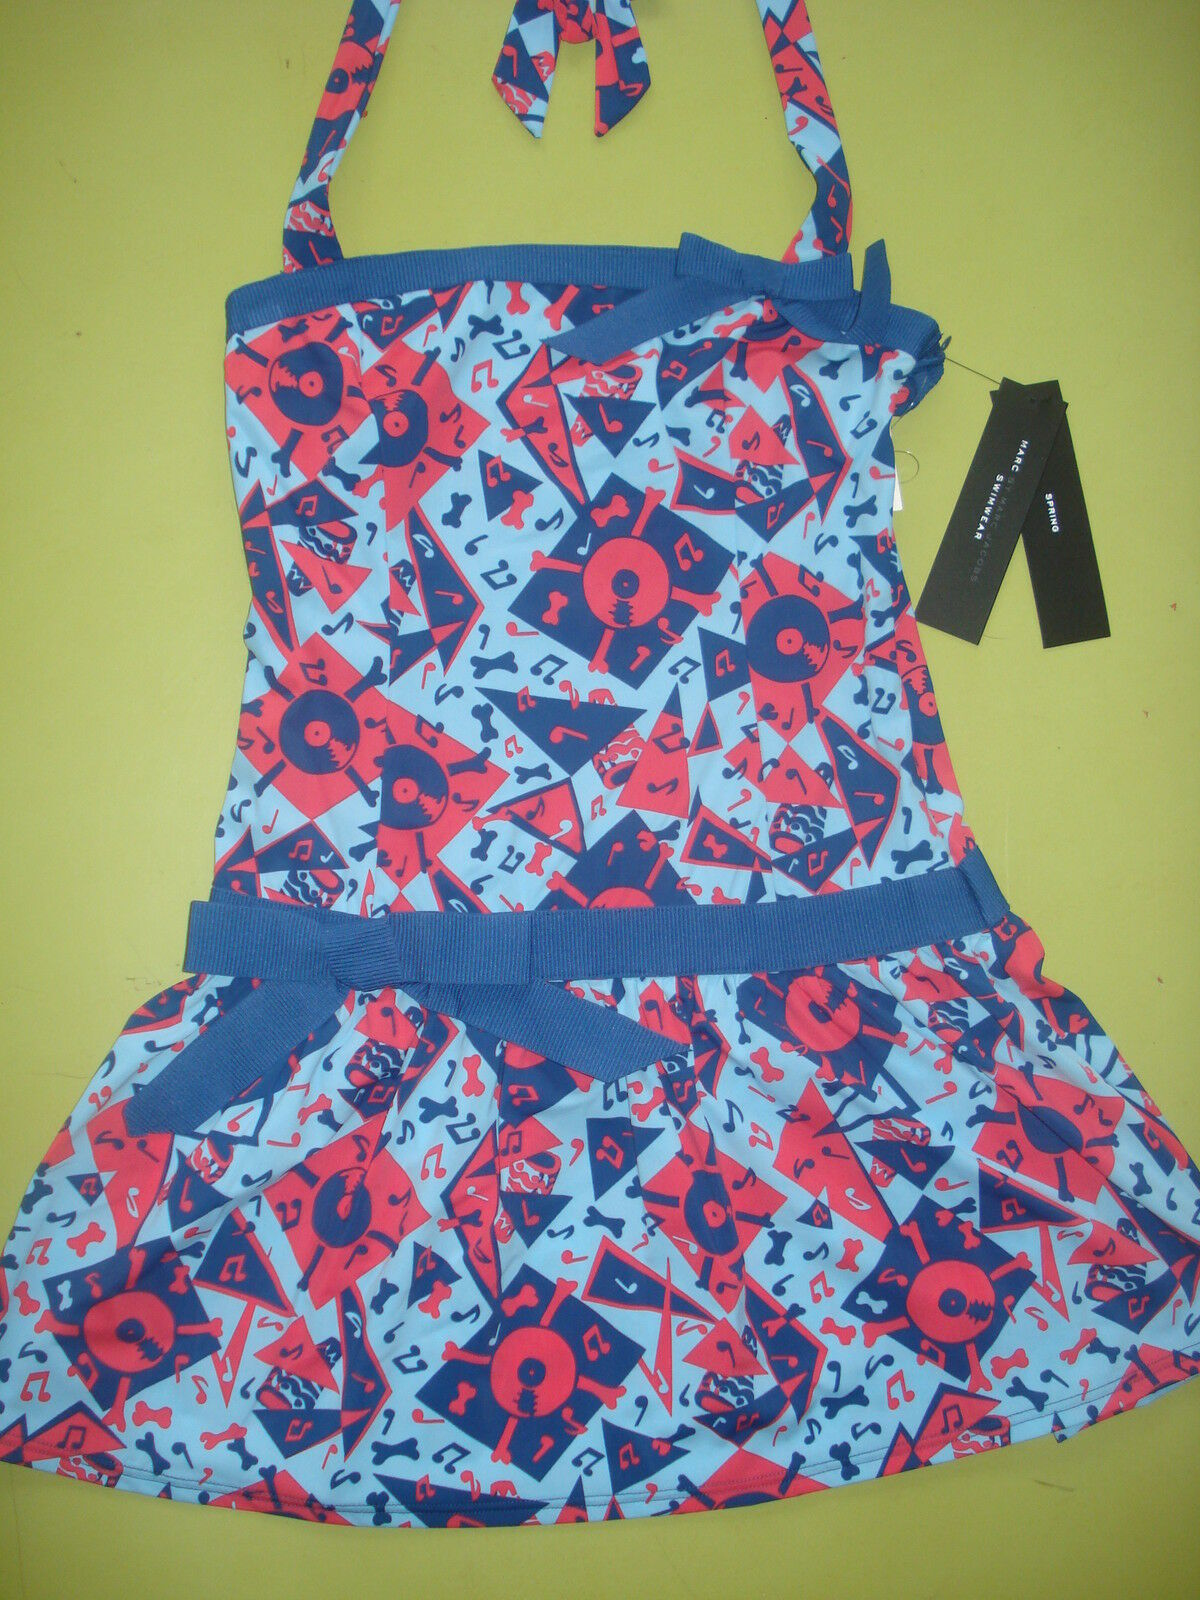 MARC JACOBS SWIMSUIT DRESS COVERUP RETRO DESIGN SMALL 173.00 NEW